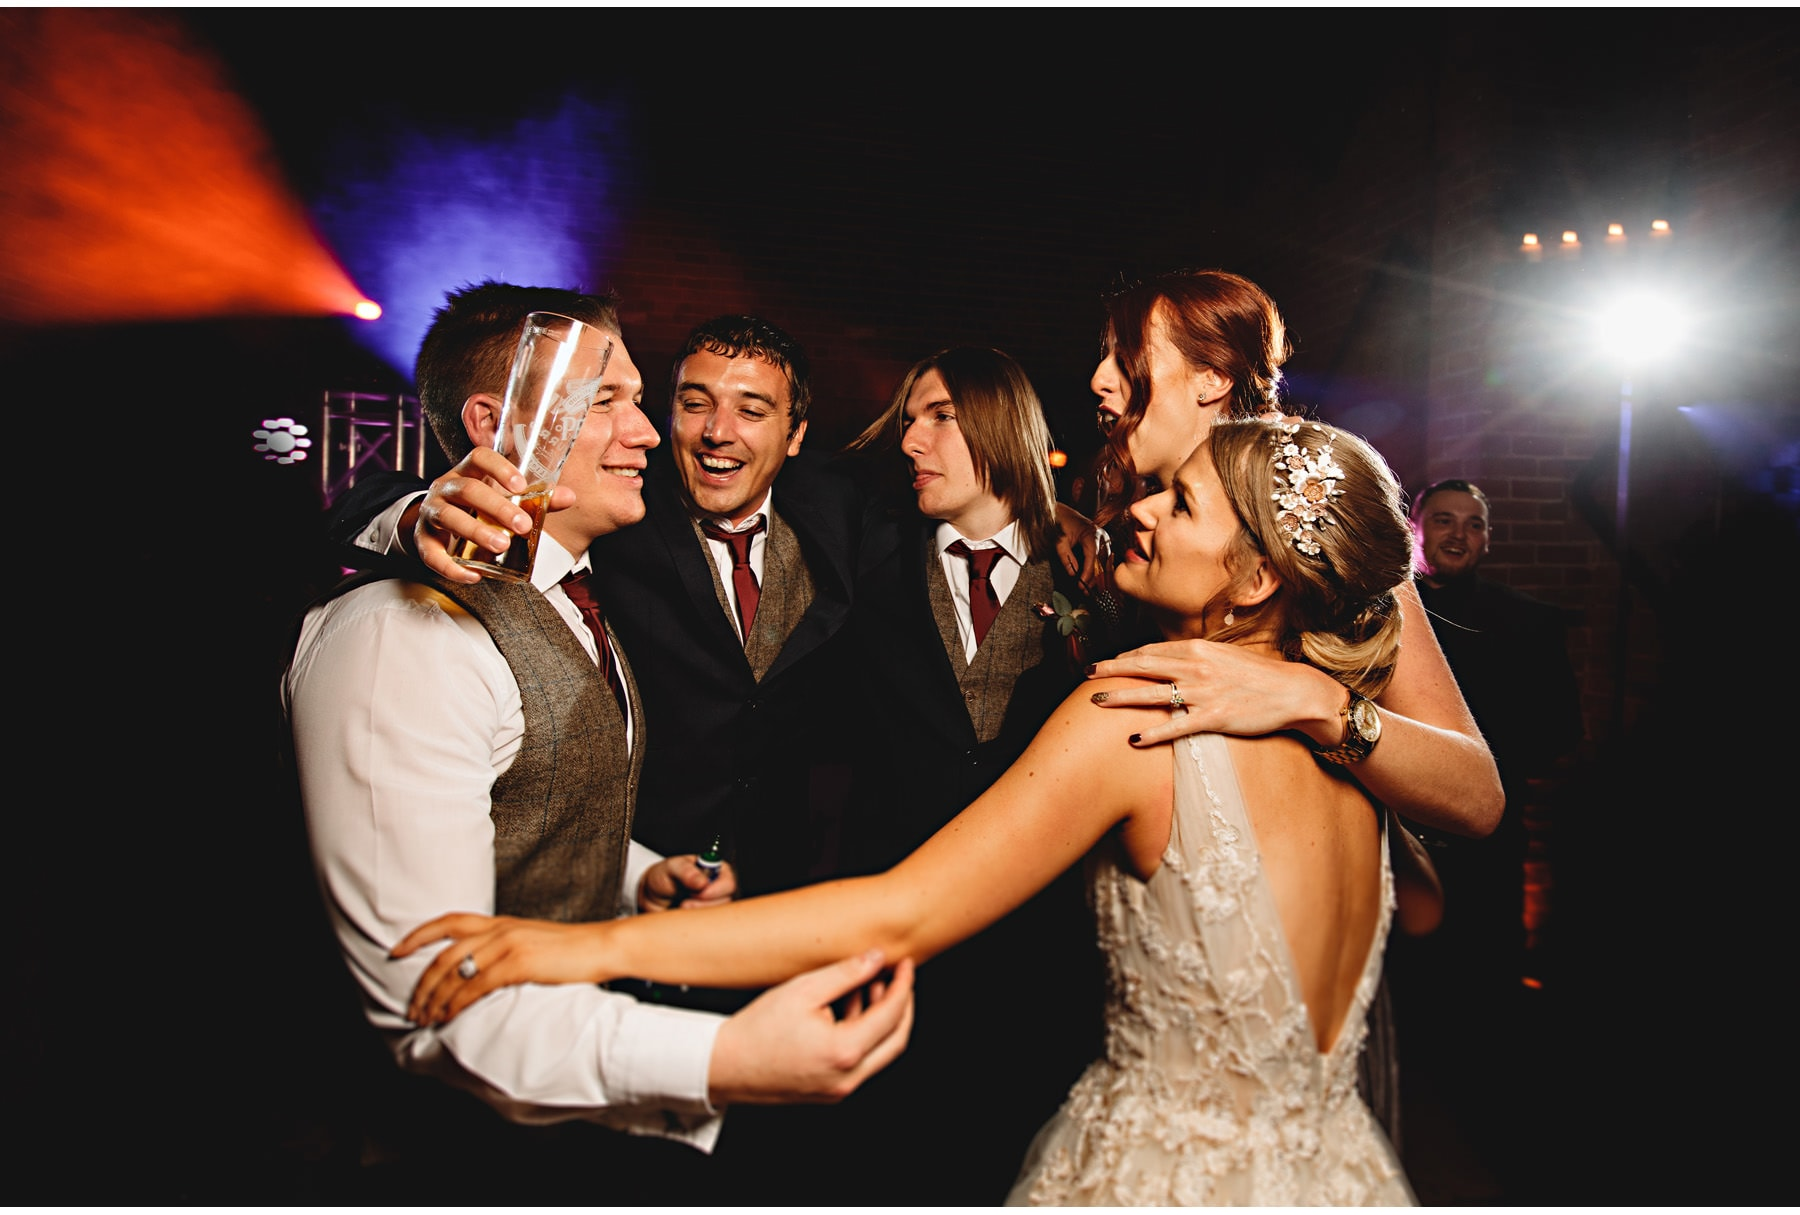 the bride & groom on the dancefloor with their friends!